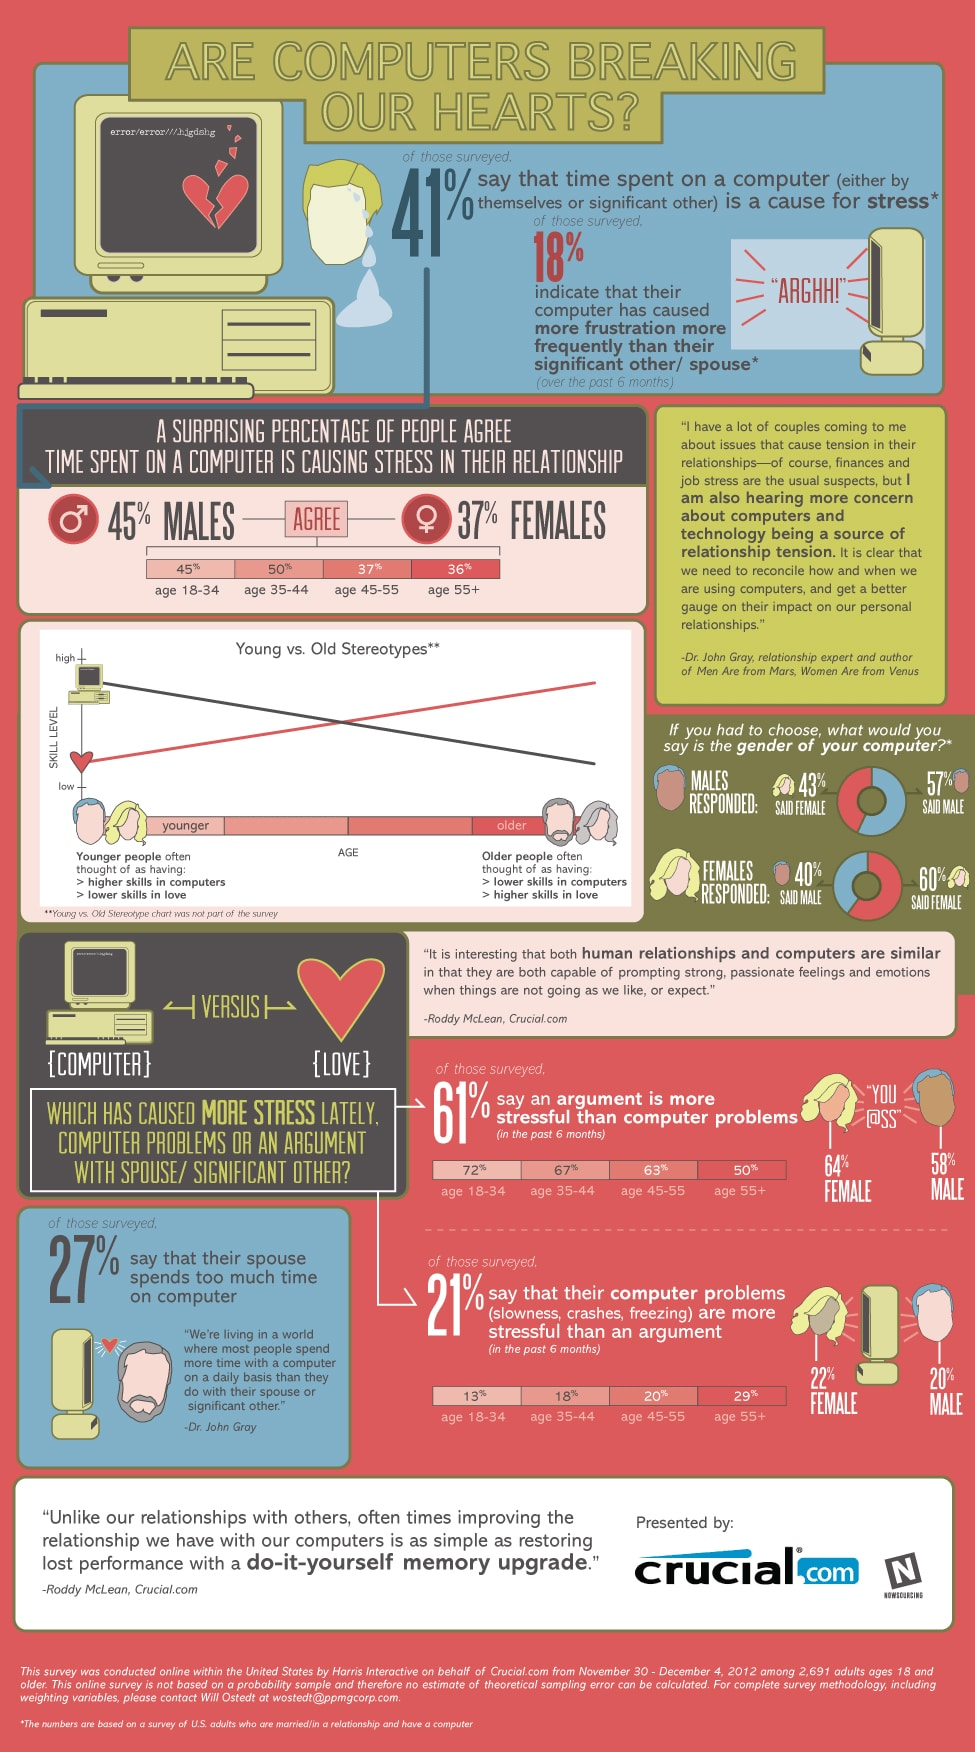 Computer Stress Is Worse Than Relationship Stress [Infographic]